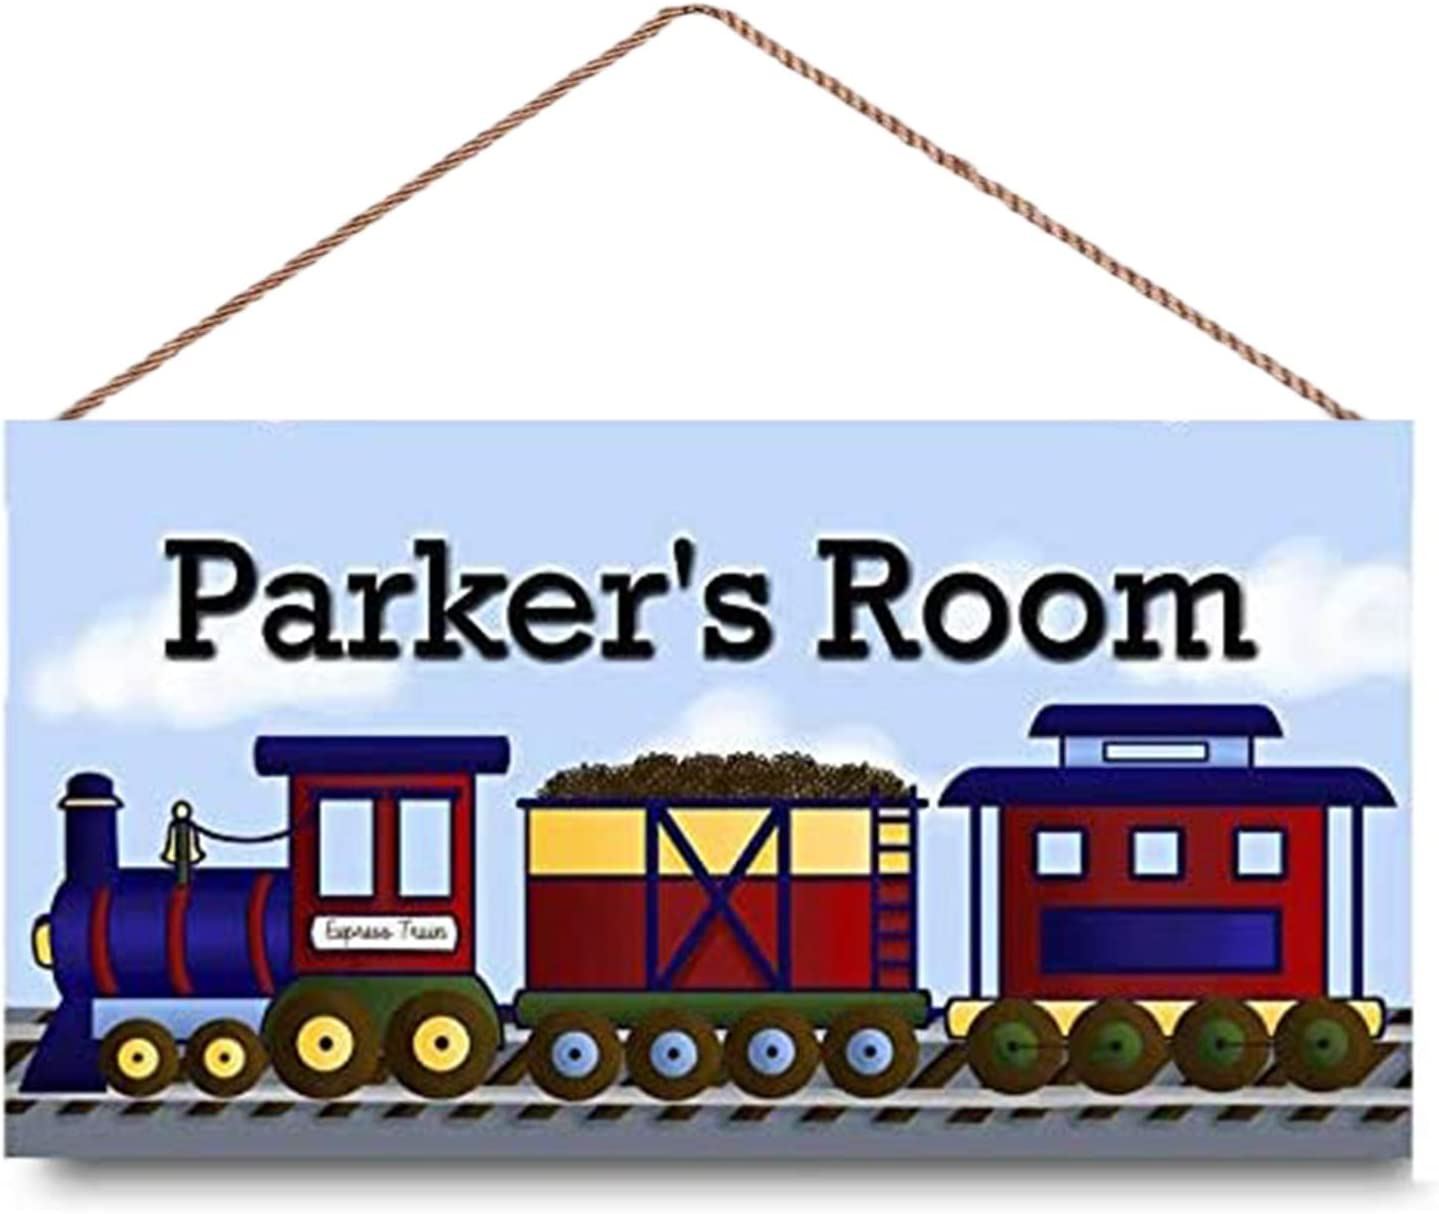 WEIMEILD Personalized Signs for Kids Room All Aboard The Express Train Boys TransportationWall Decor Gift,Kid's Name,Wall Art,Baby Nursery Door Sign